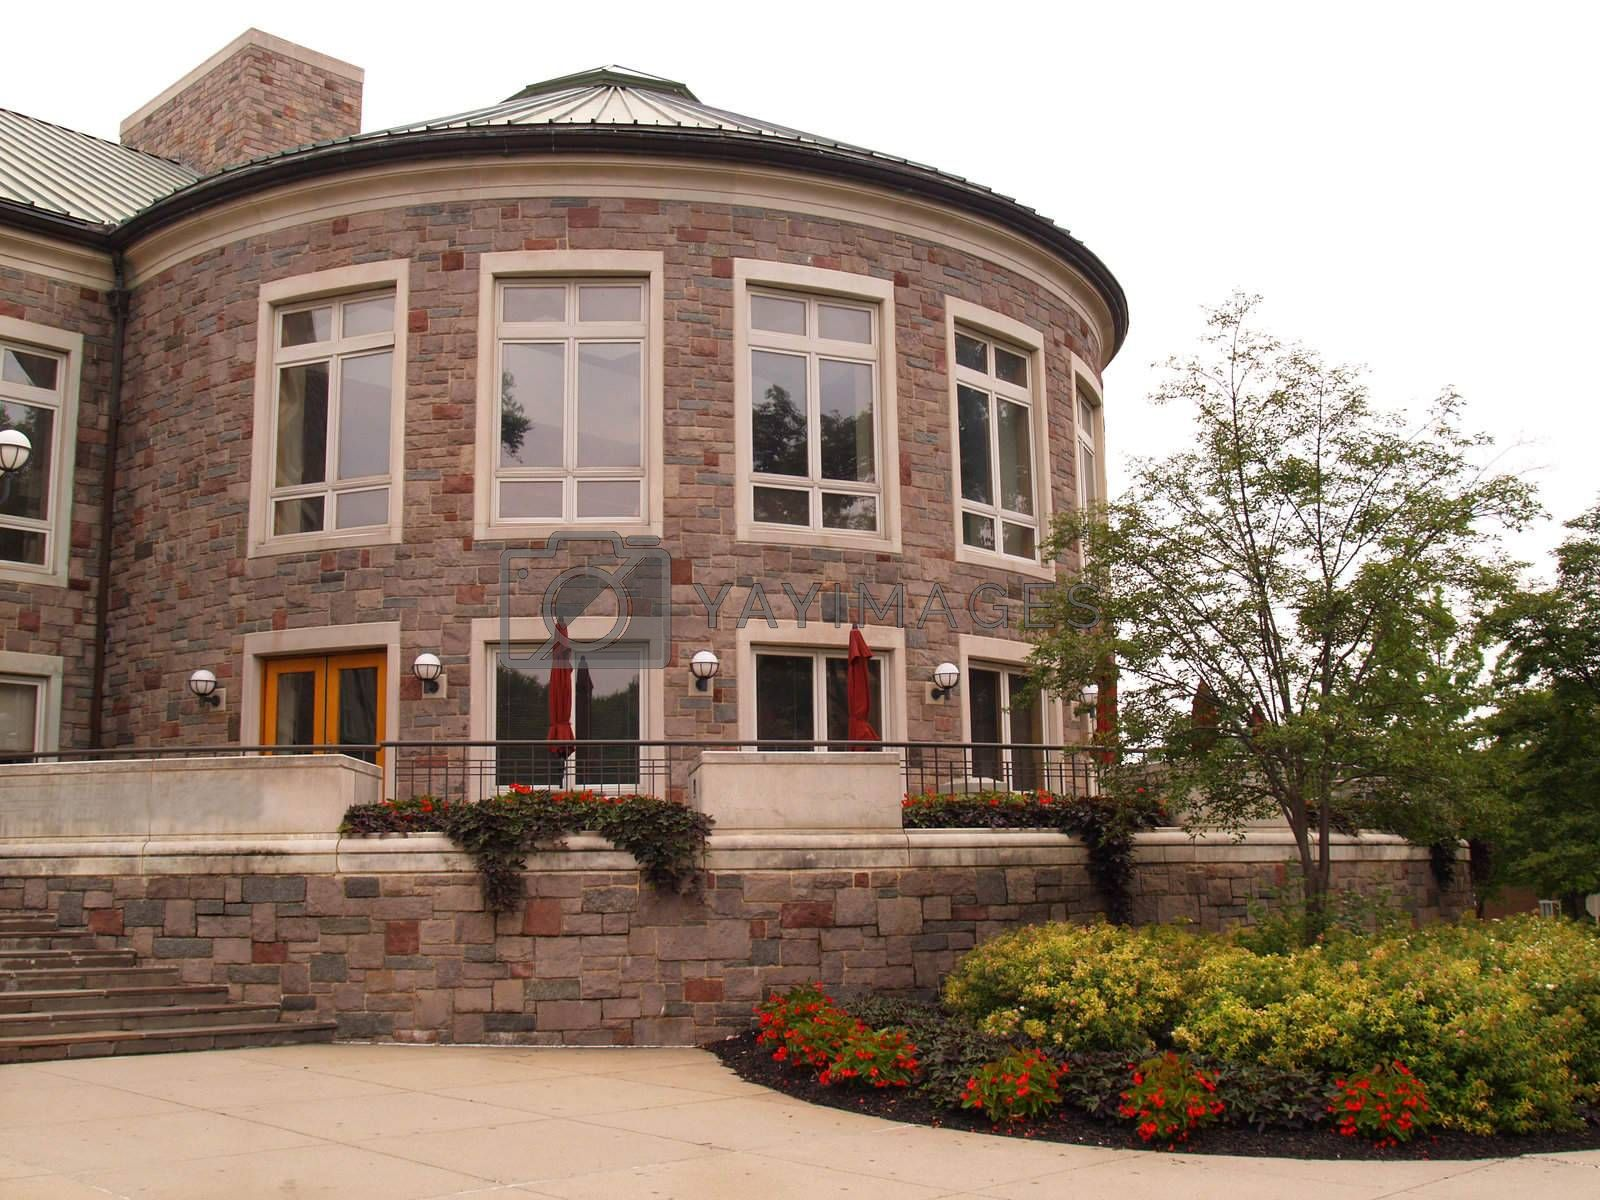 rounded stone building on Lafayette College campus In Easton, Pennsylvania